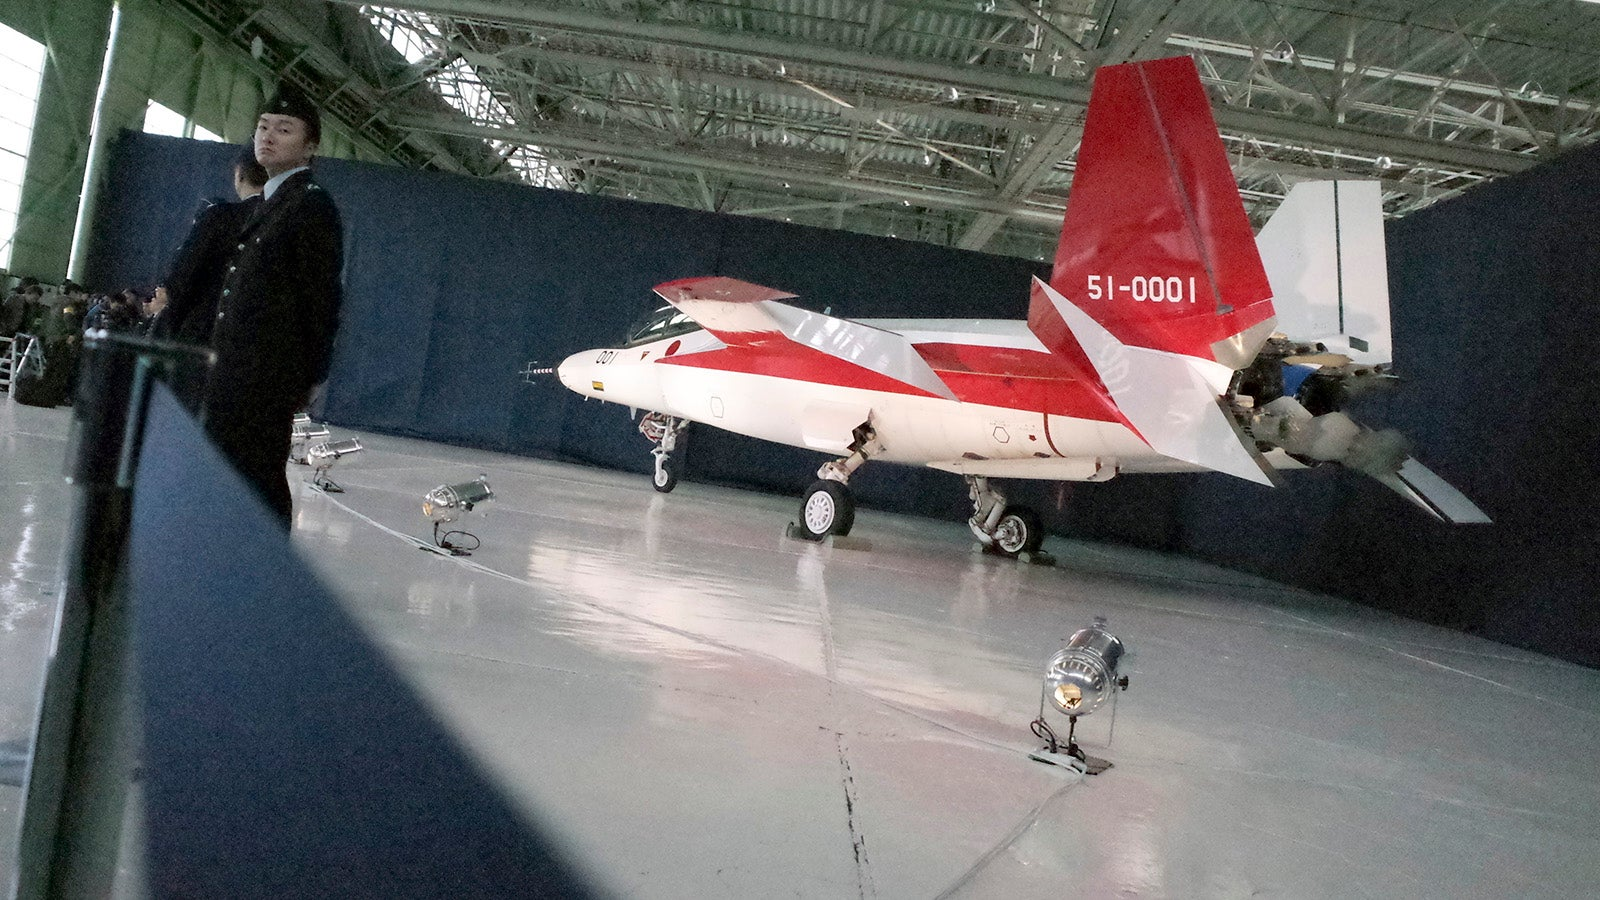 Now Japan Has a Stealth Fighter Too